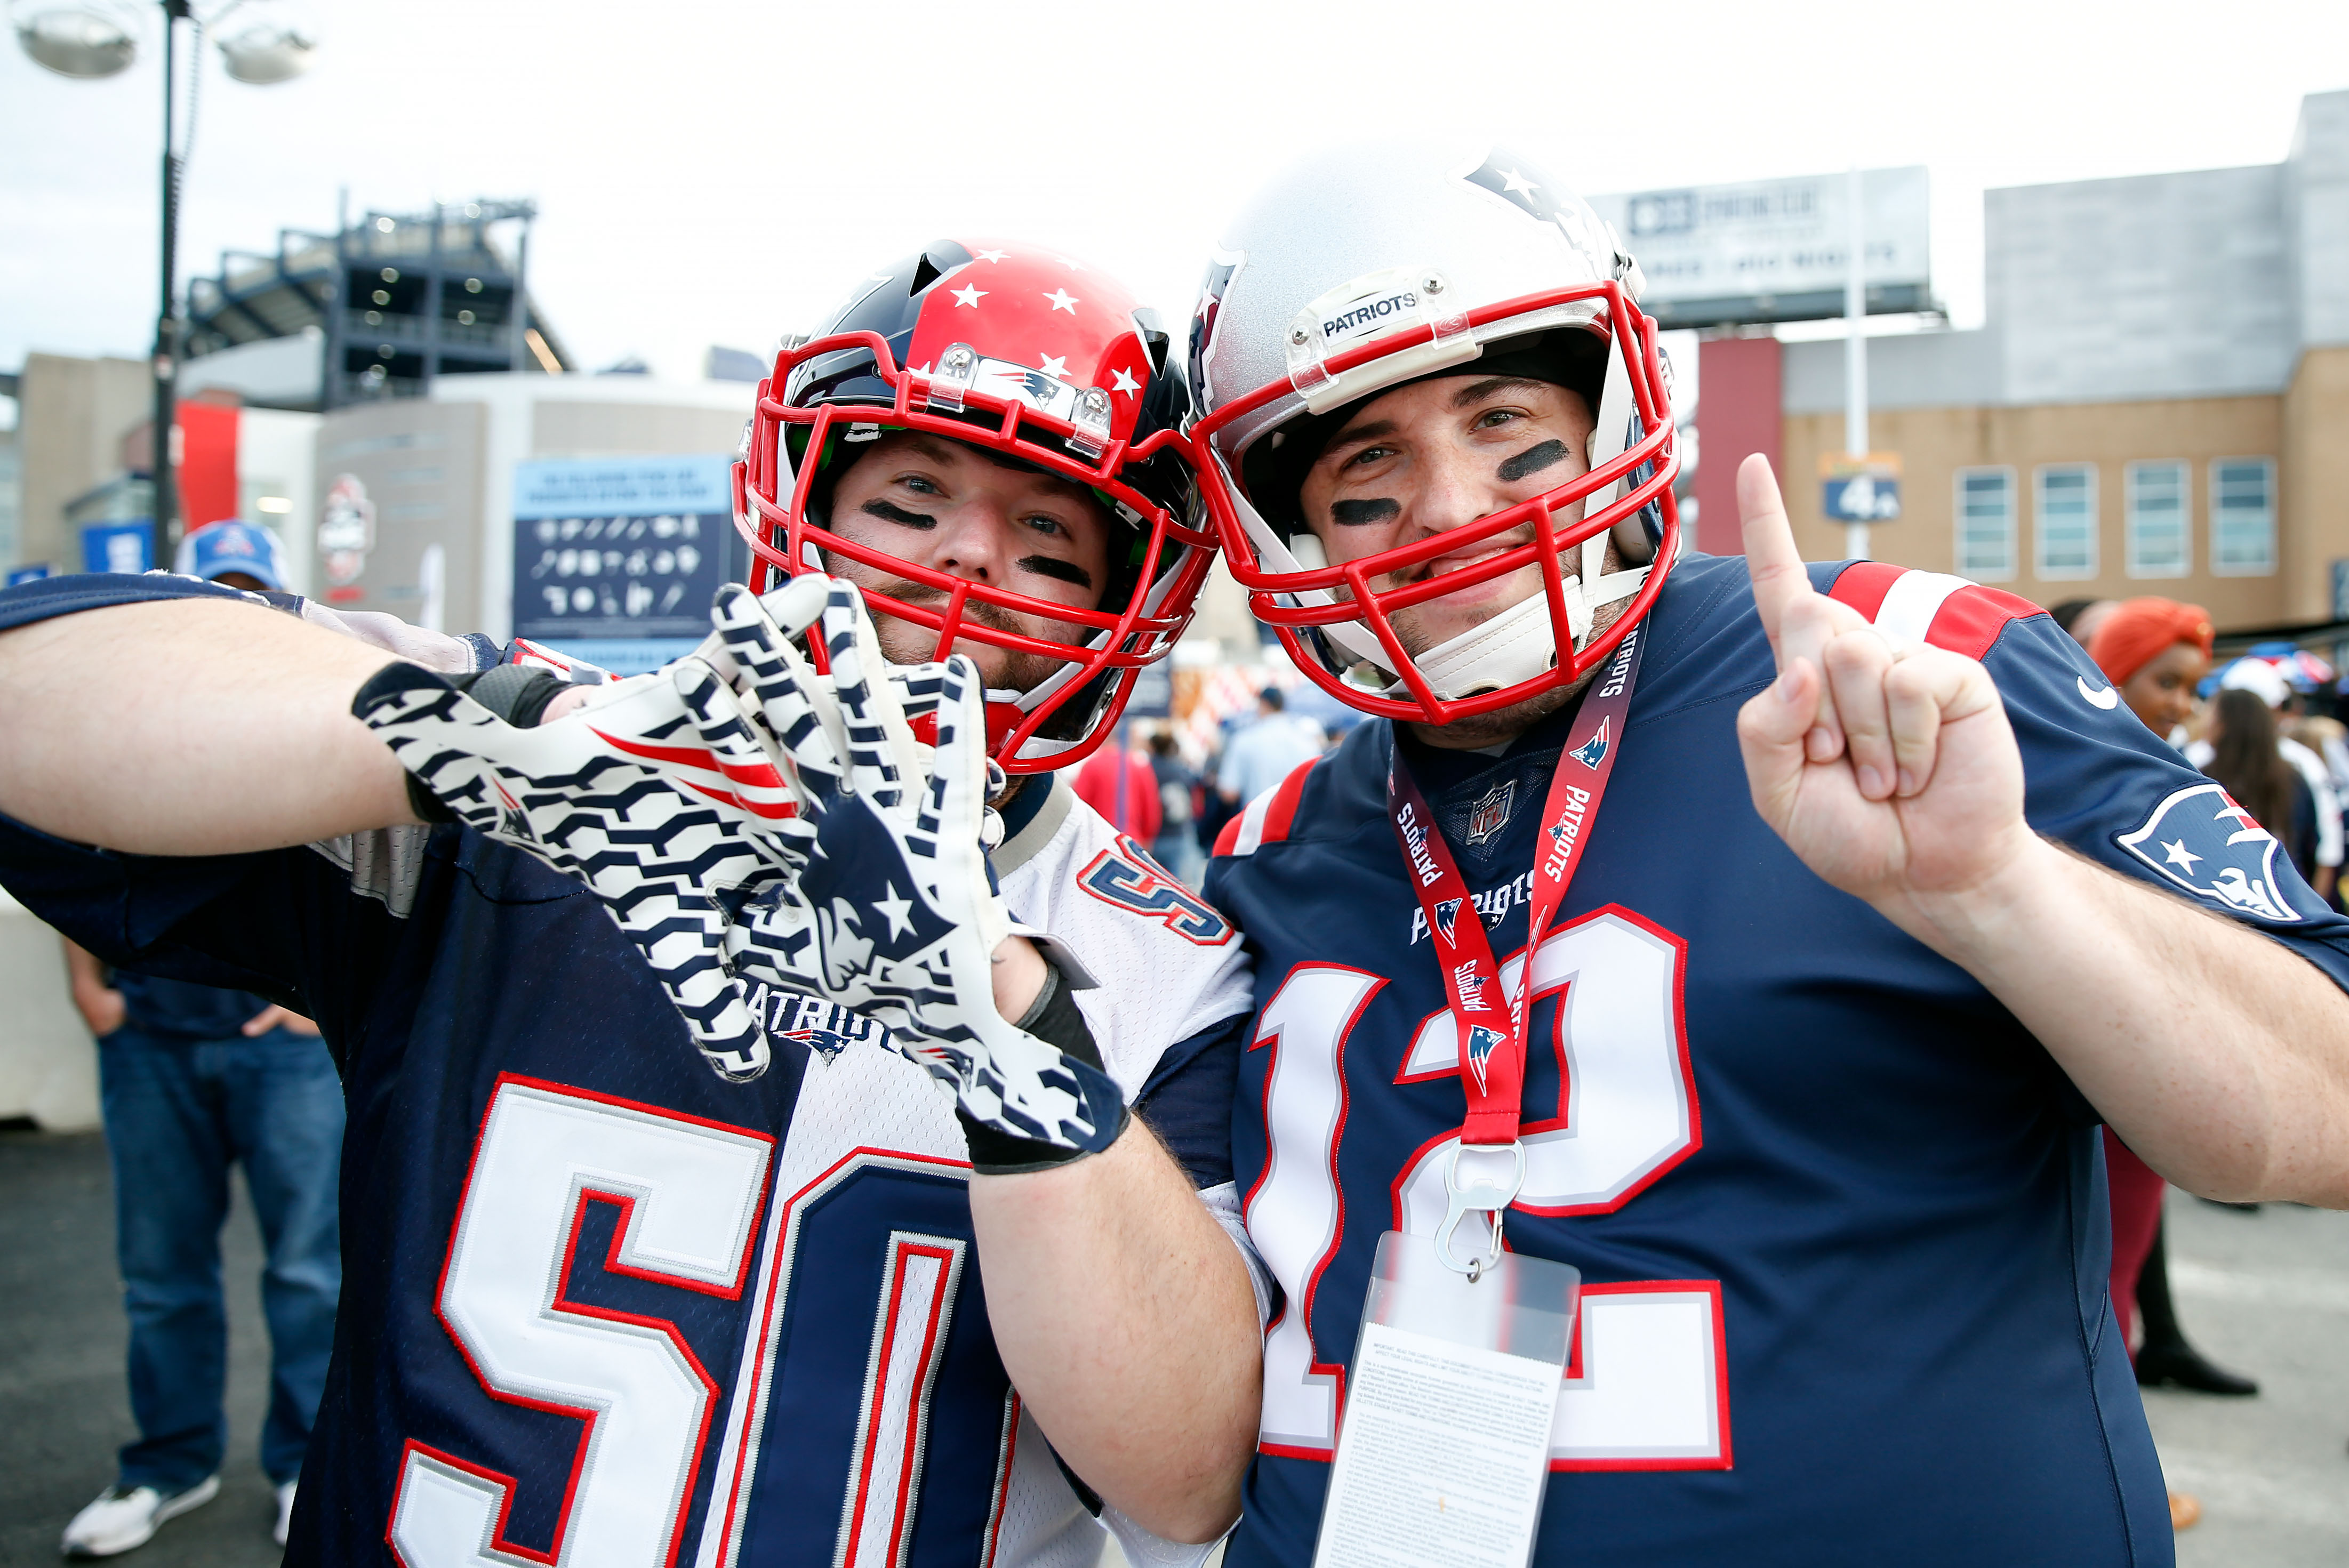 Patriots fans are gushing over 90s royal blue jerseys for sale in team's pro shop